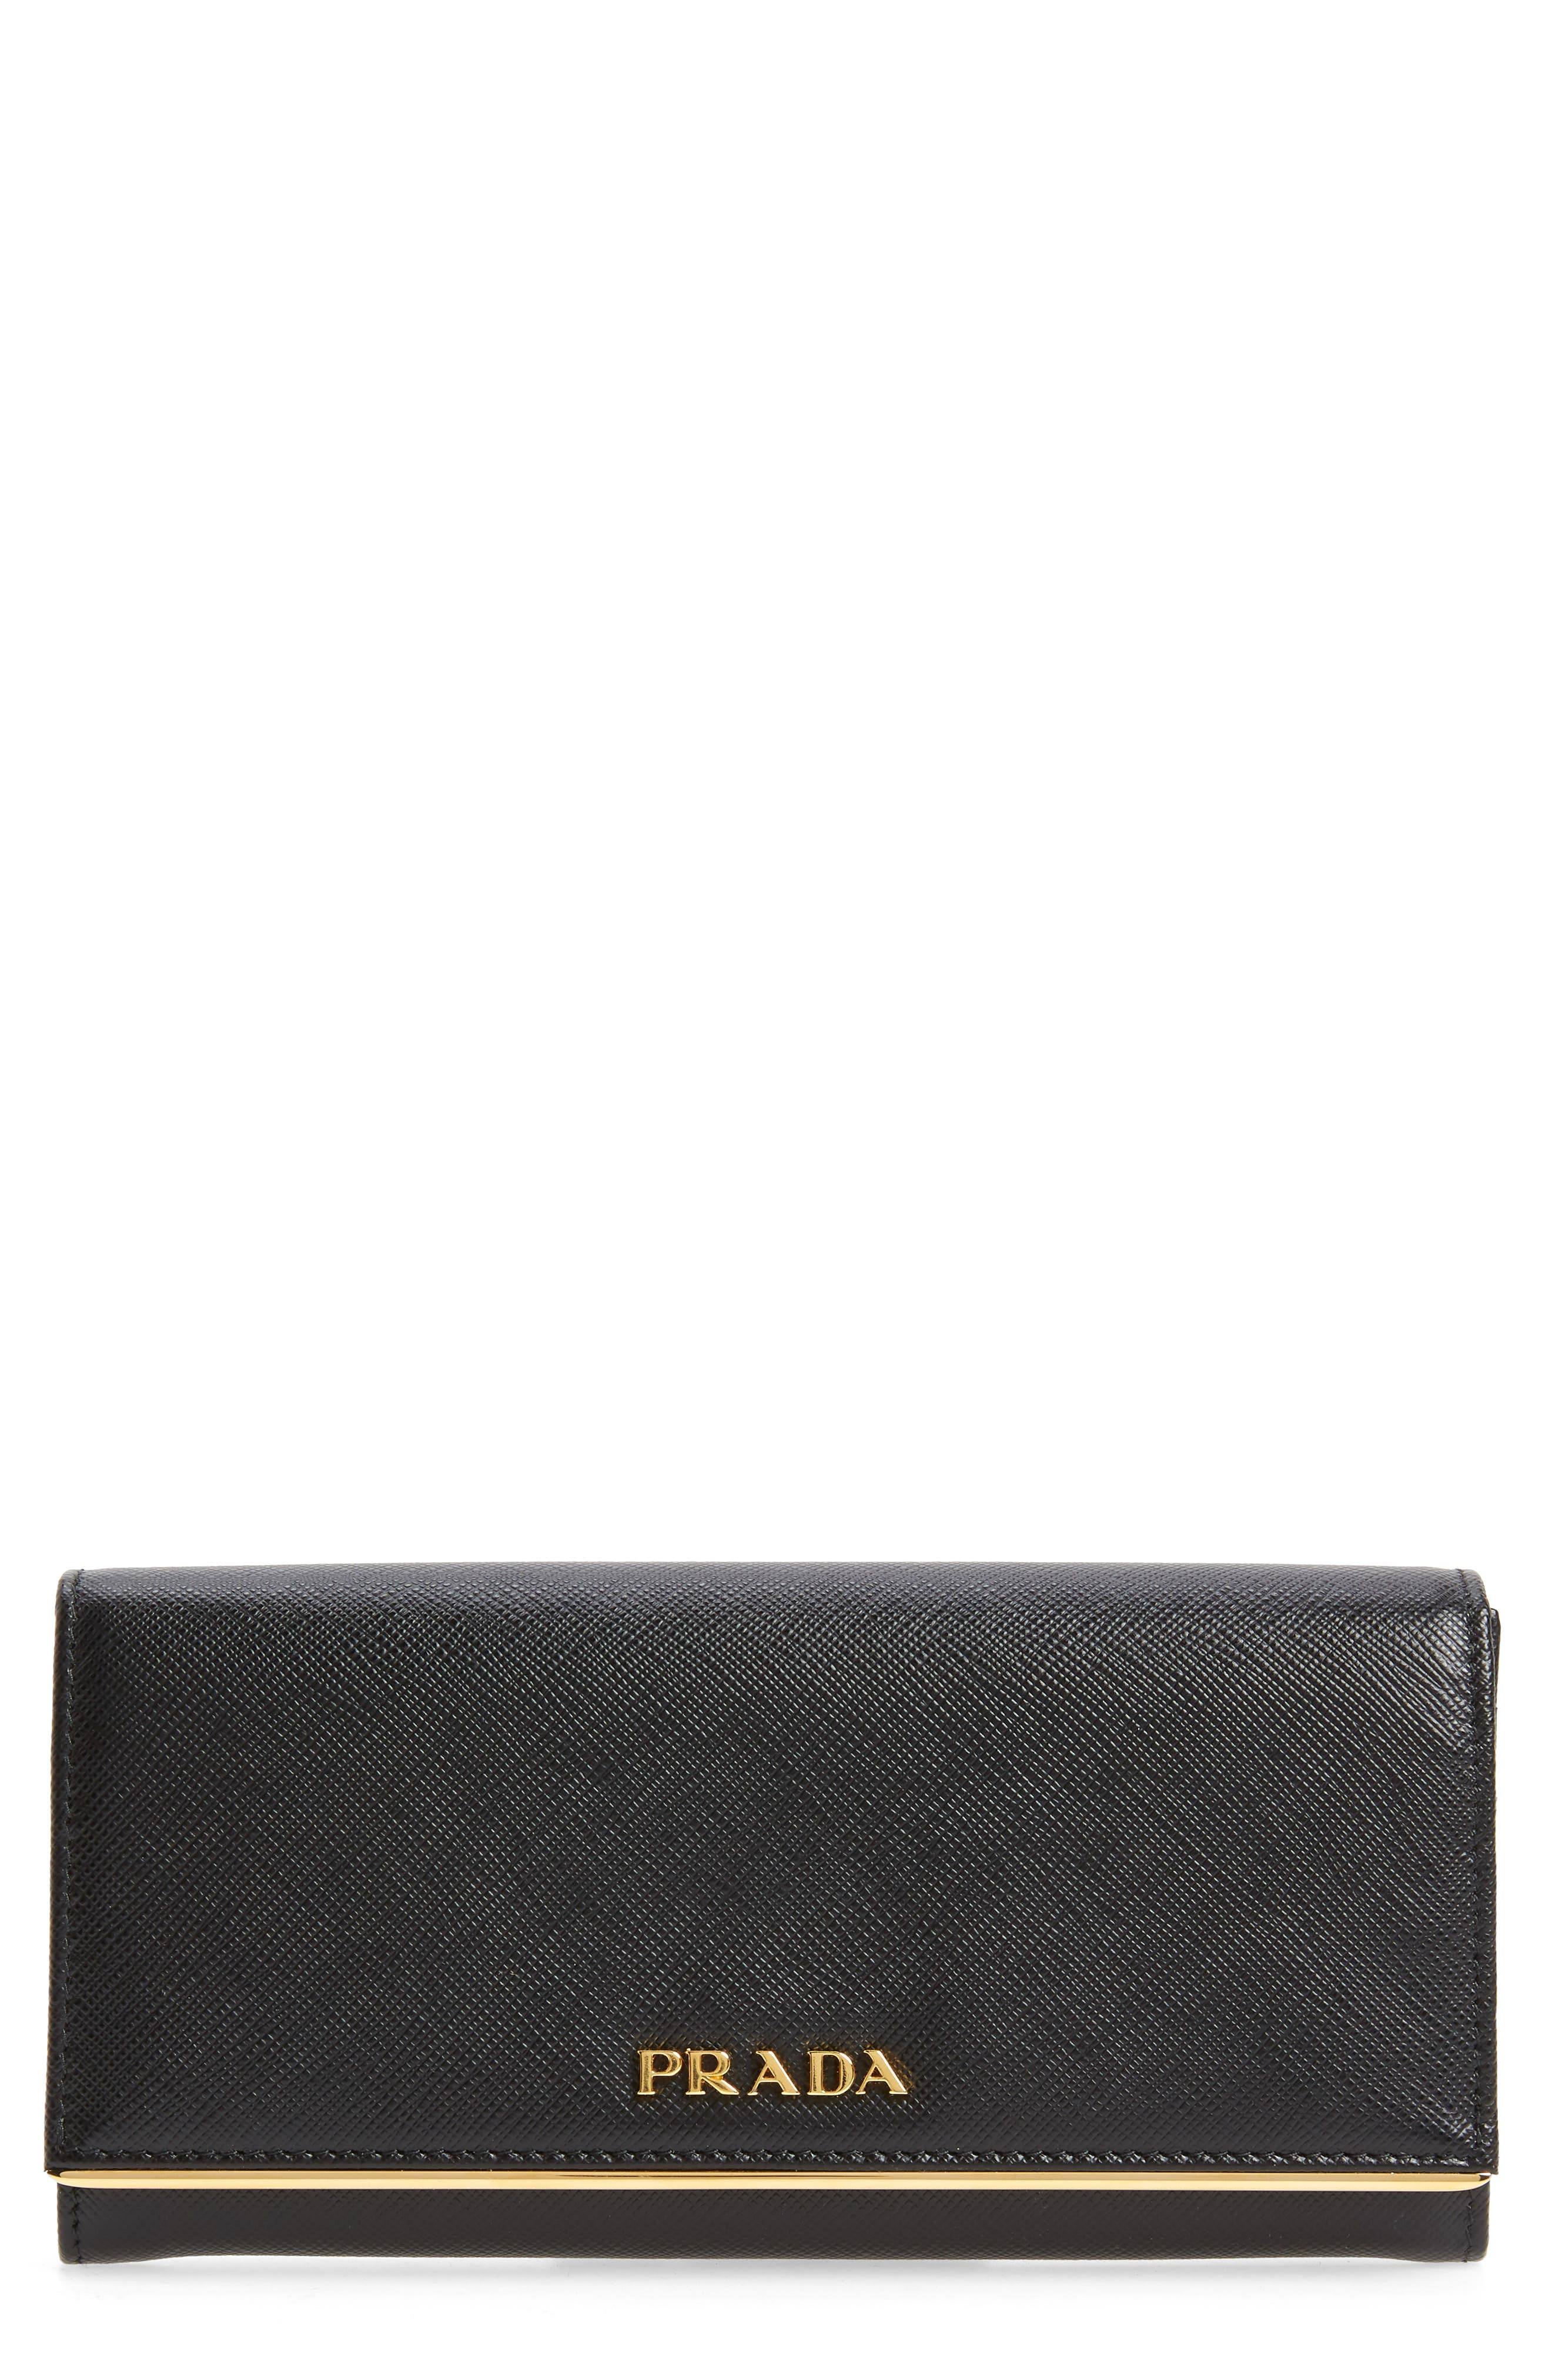 Metal Bar Saffiano Leather Continental Wallet,                         Main,                         color, 001